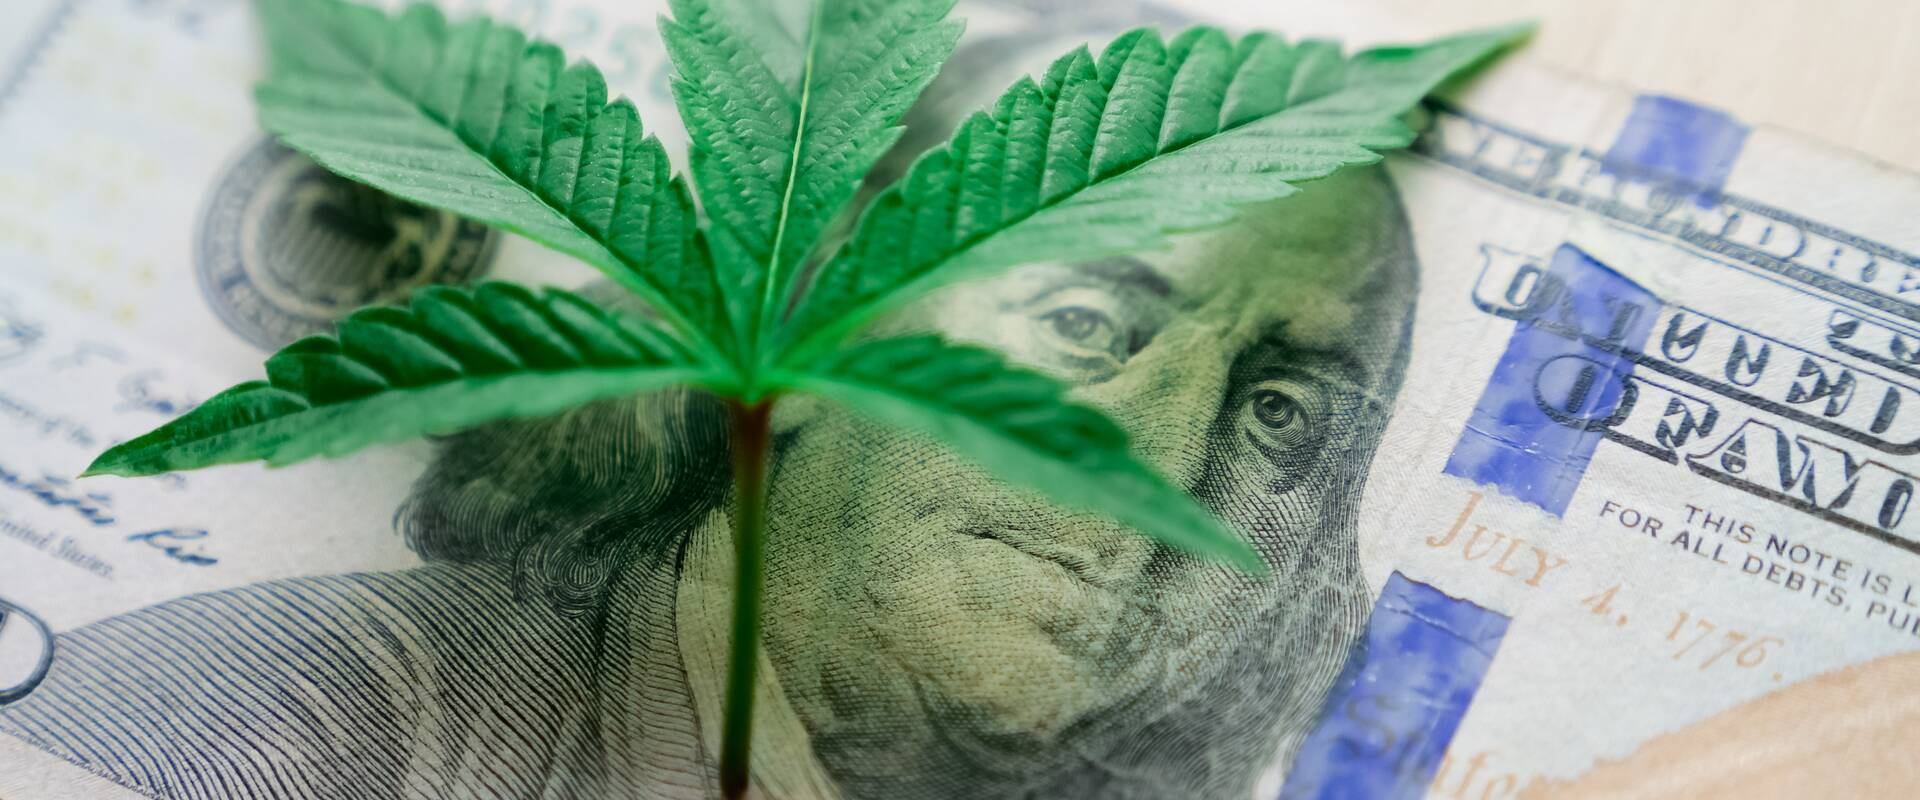 Cannabis Microbusinesses Potentially a Boon for the Hudson Valley